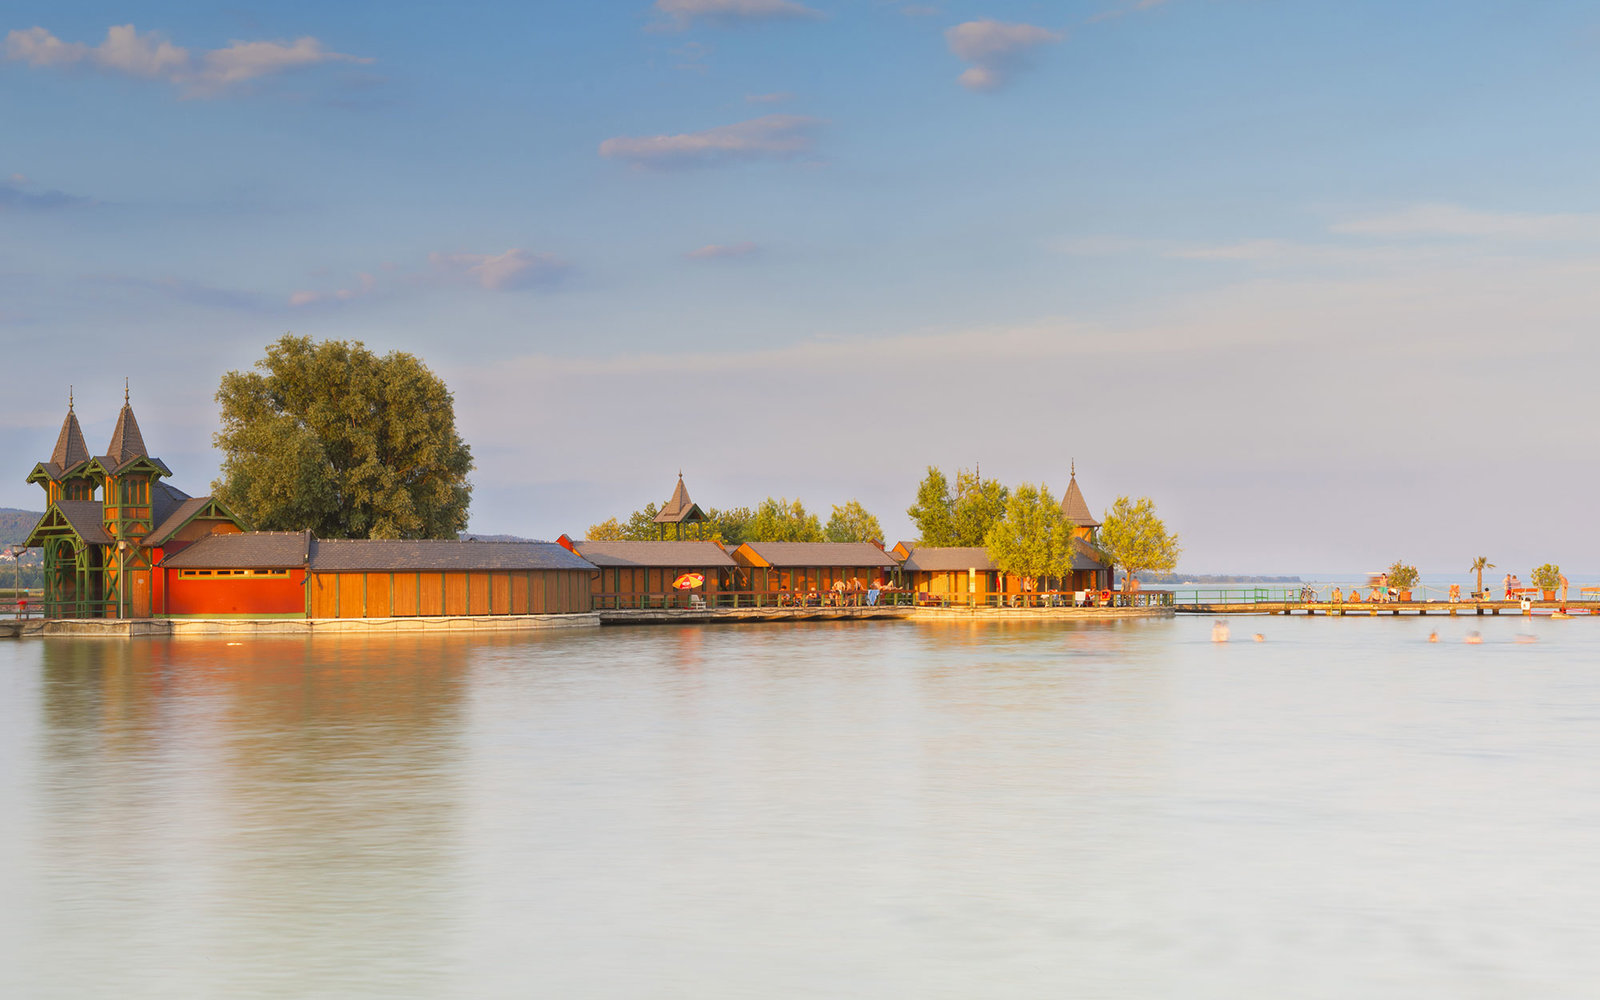 Hungary, Zala County, Keszthely, Pier on Lake Balaton